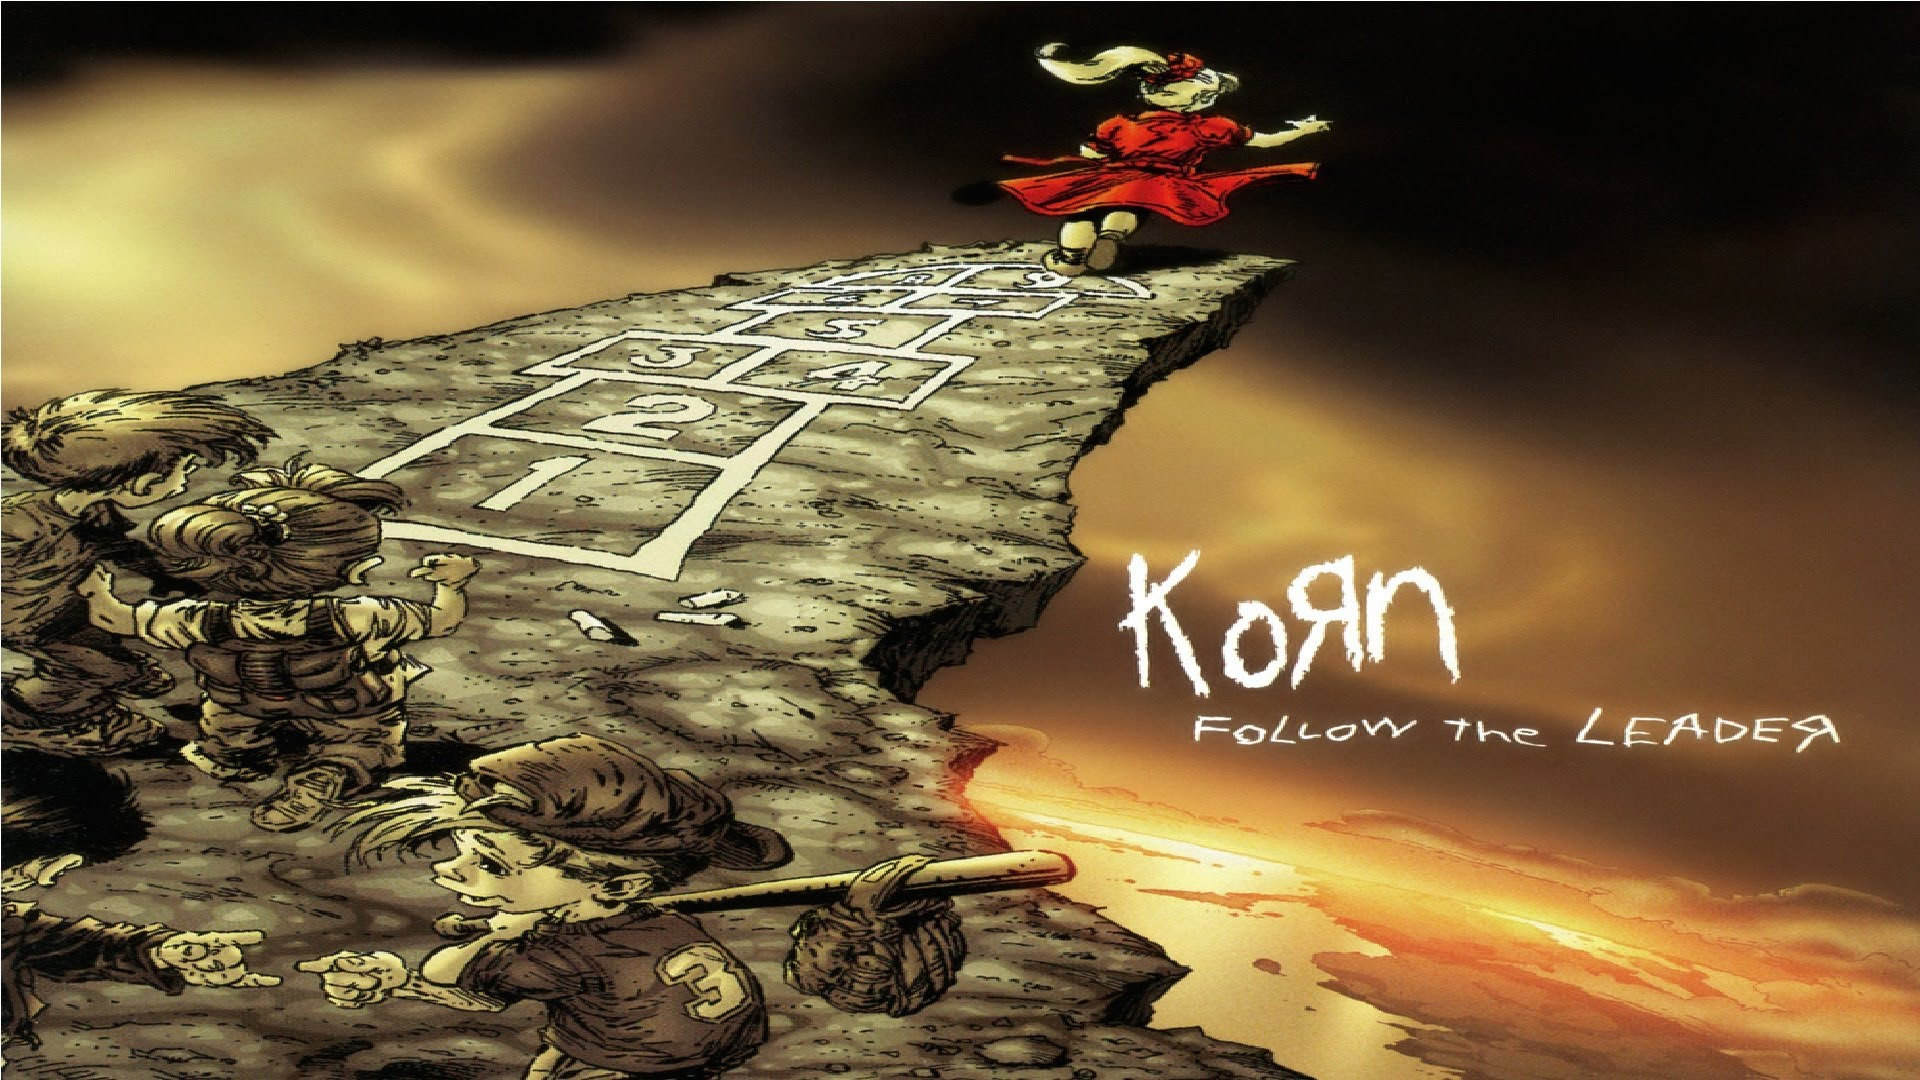 Korn wallpaper, picture, photo, image 1920x1080